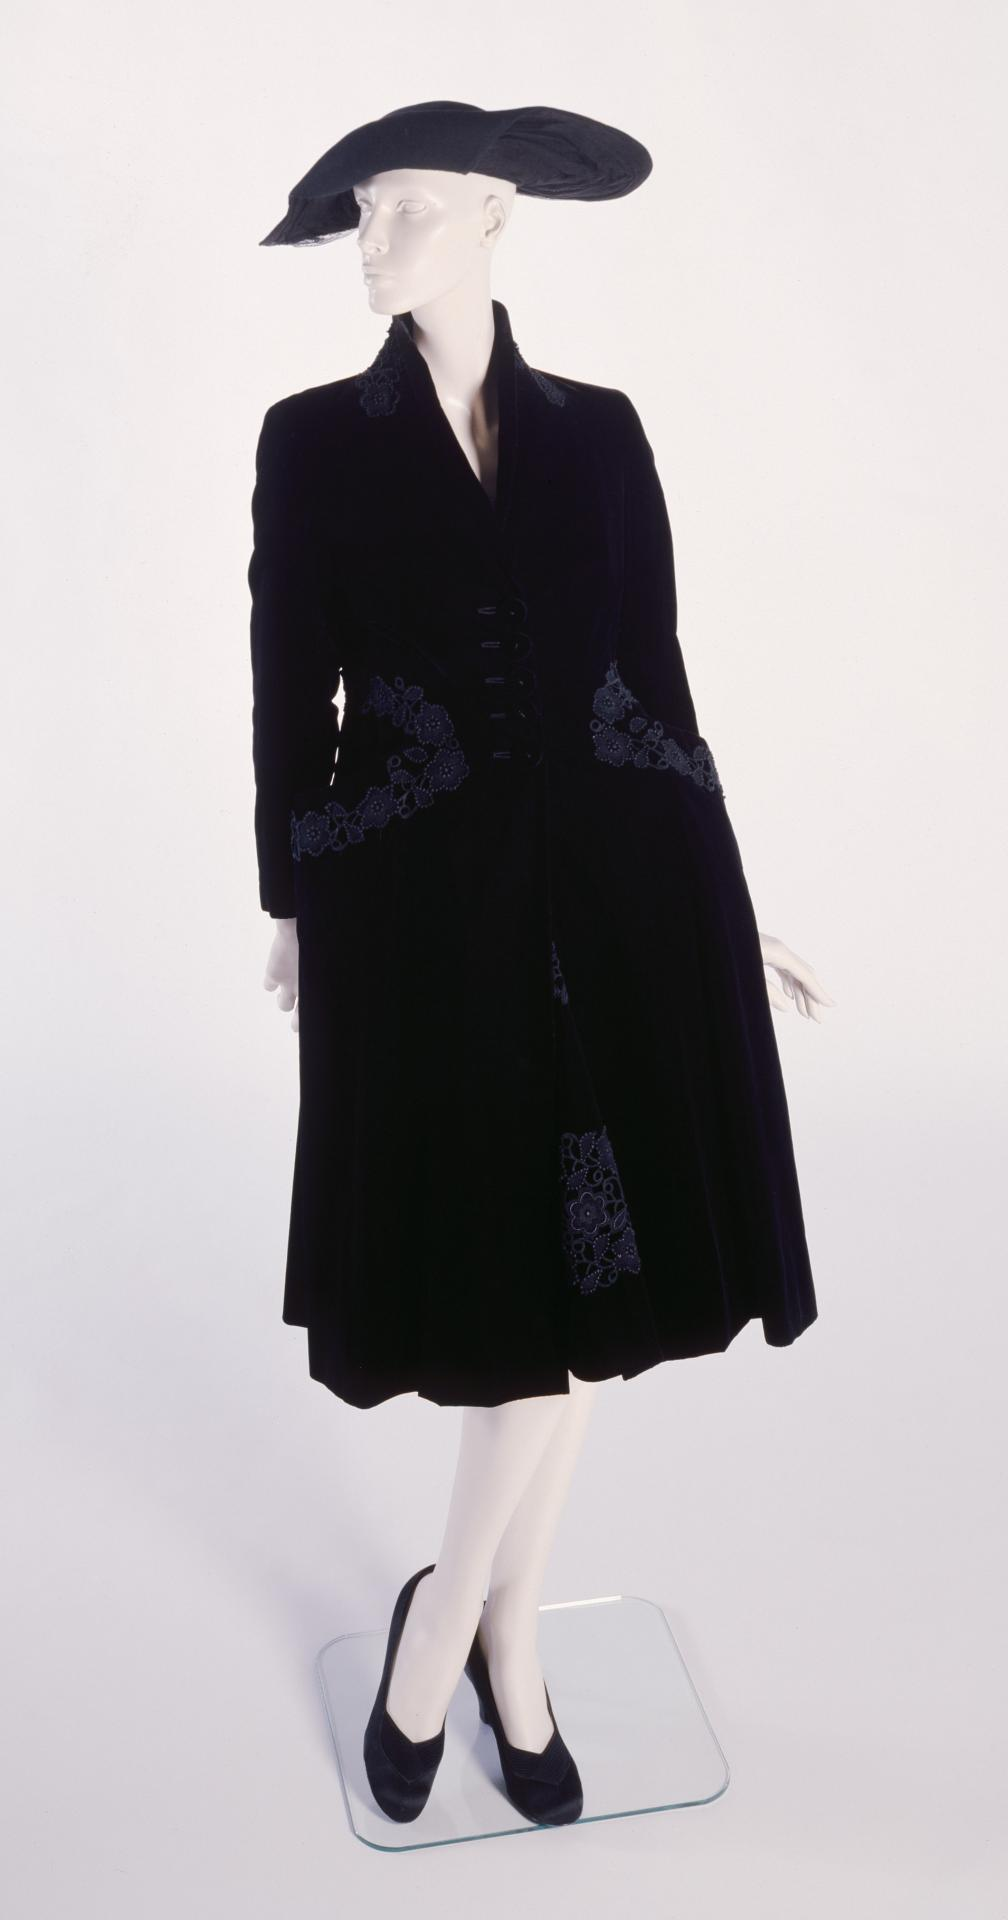 Evening coat and dress